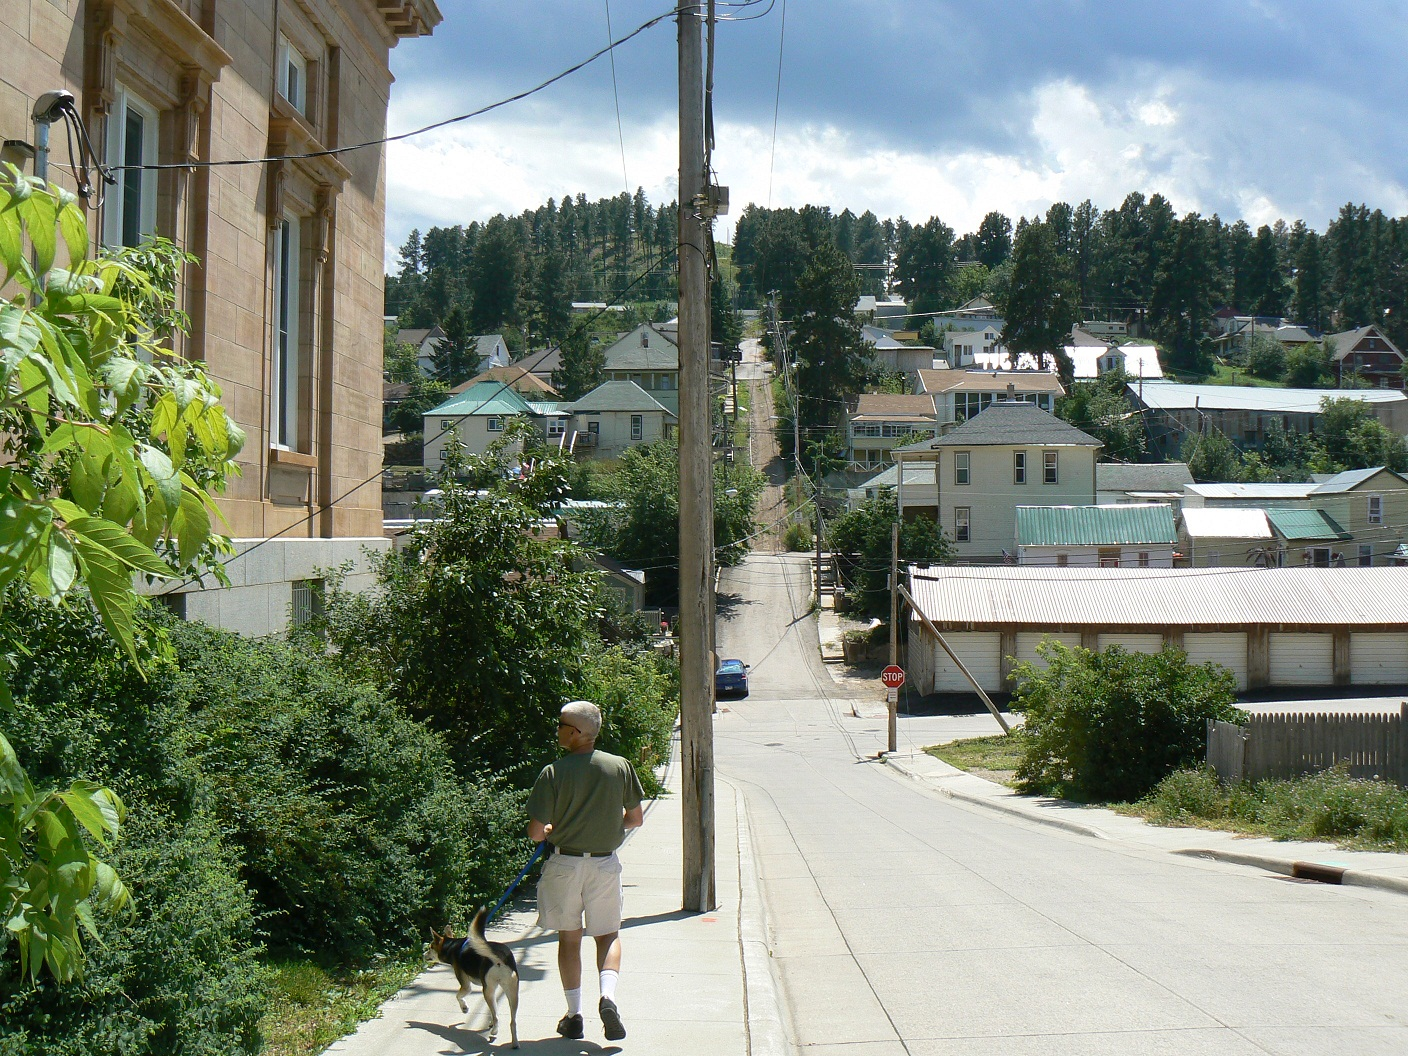 Click image for larger version  Name:Beside Lead Post Office and view of part of my route.jpg Views:49 Size:780.9 KB ID:136885